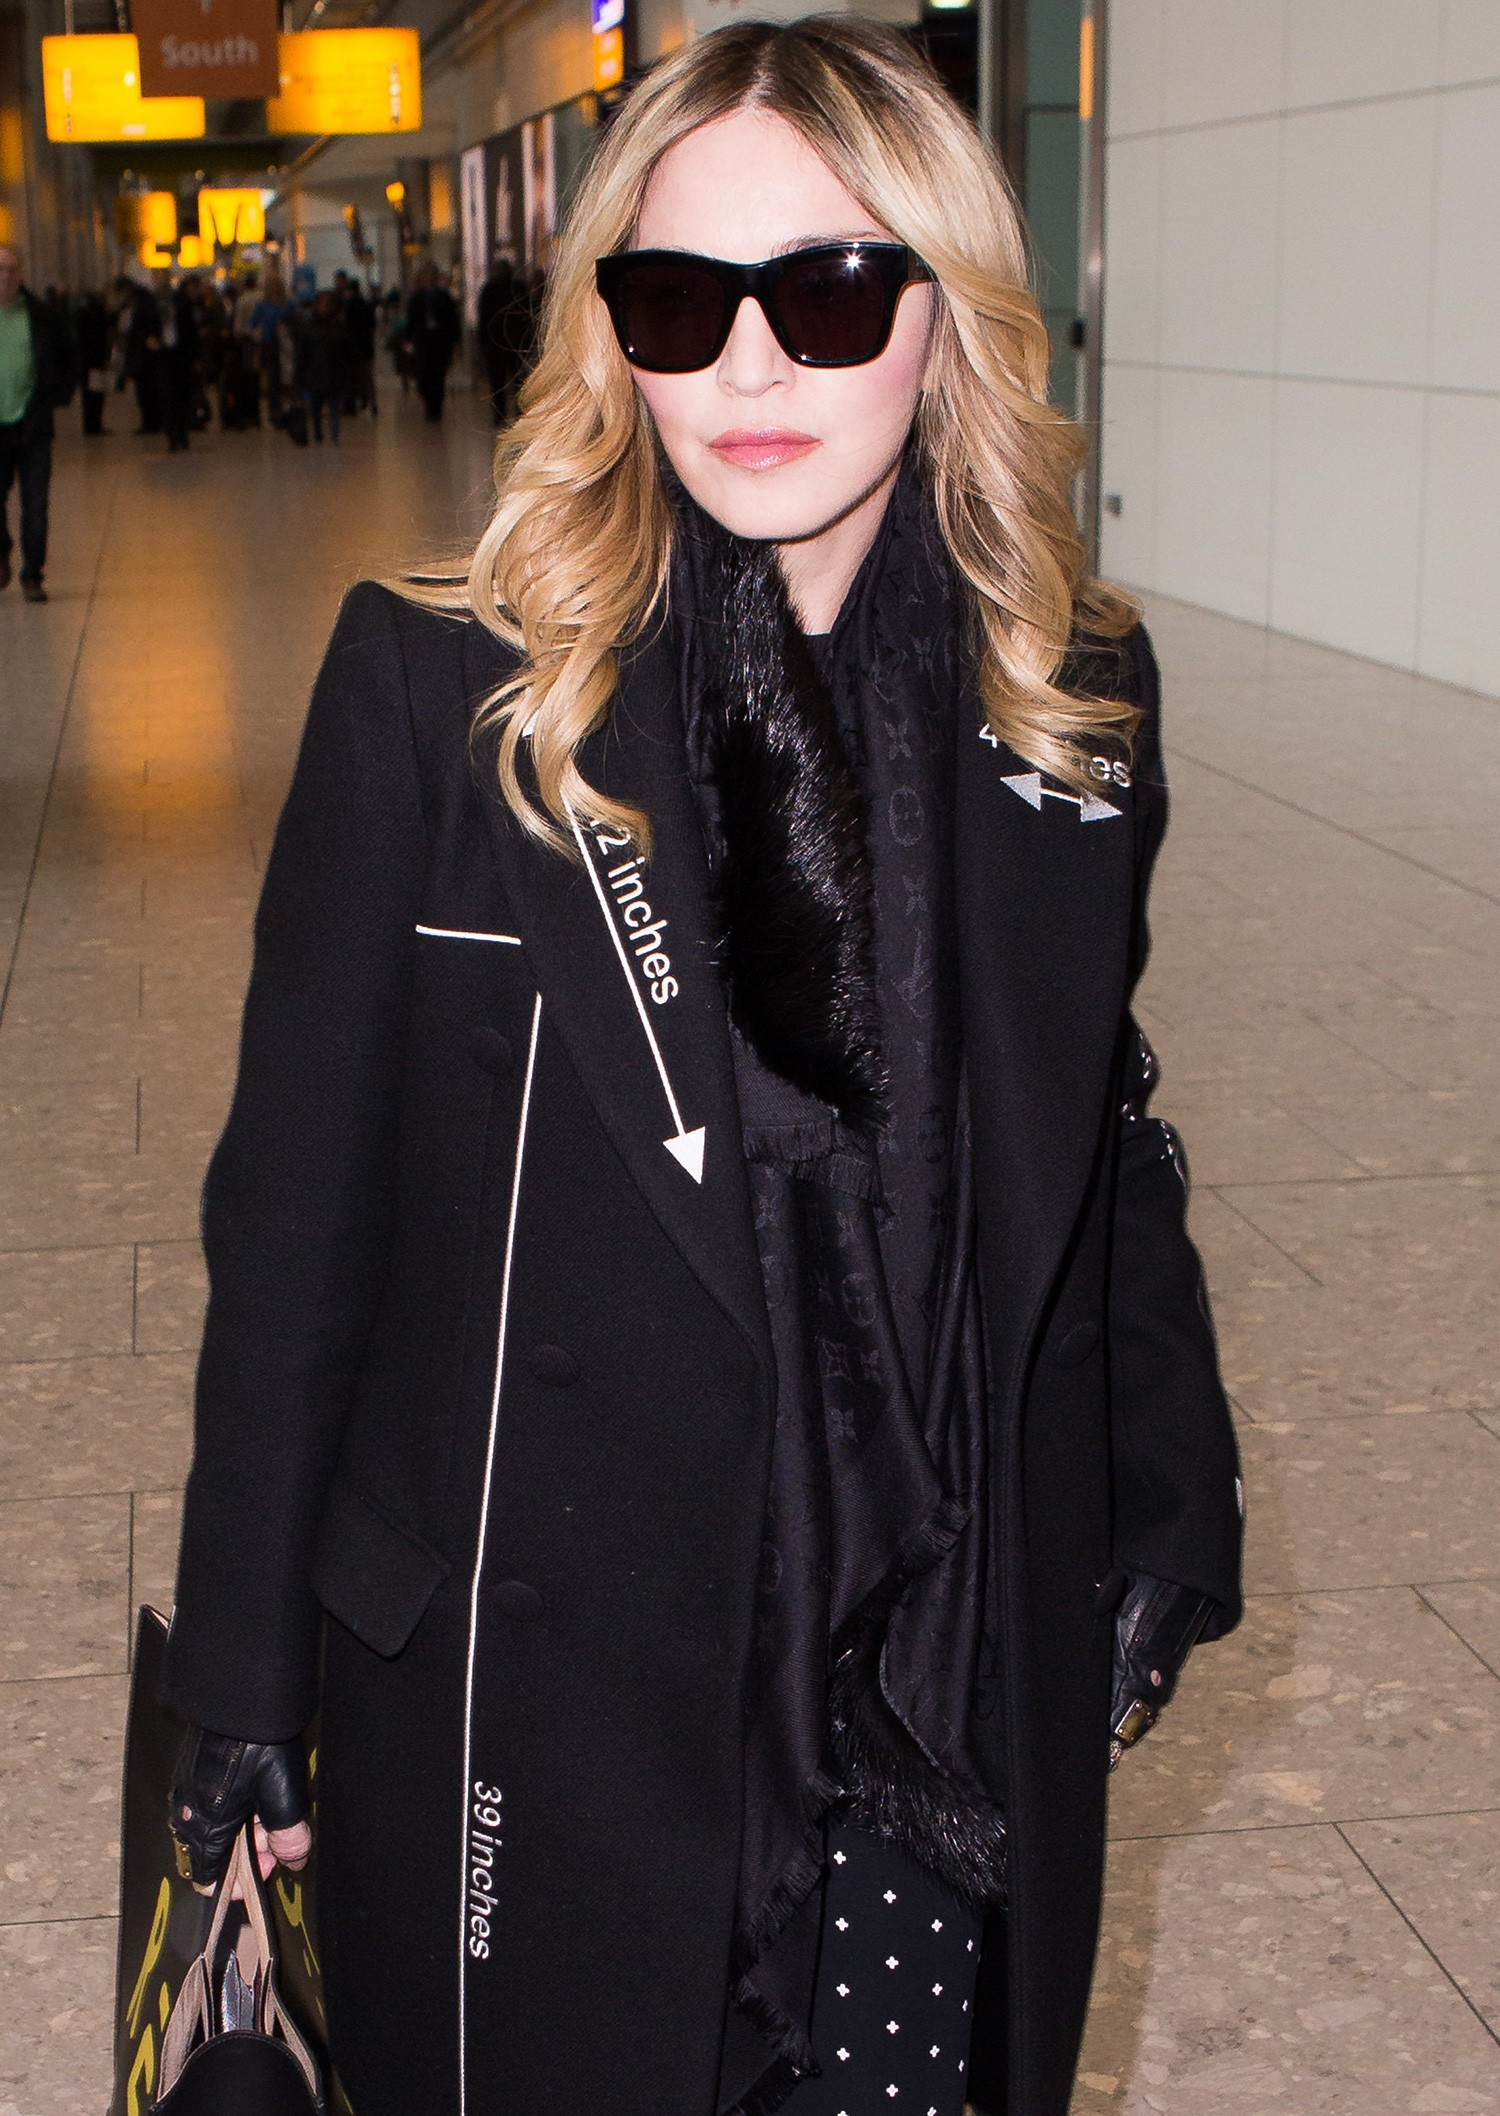 20160407-pictures-madonna-out-and-about-london-03